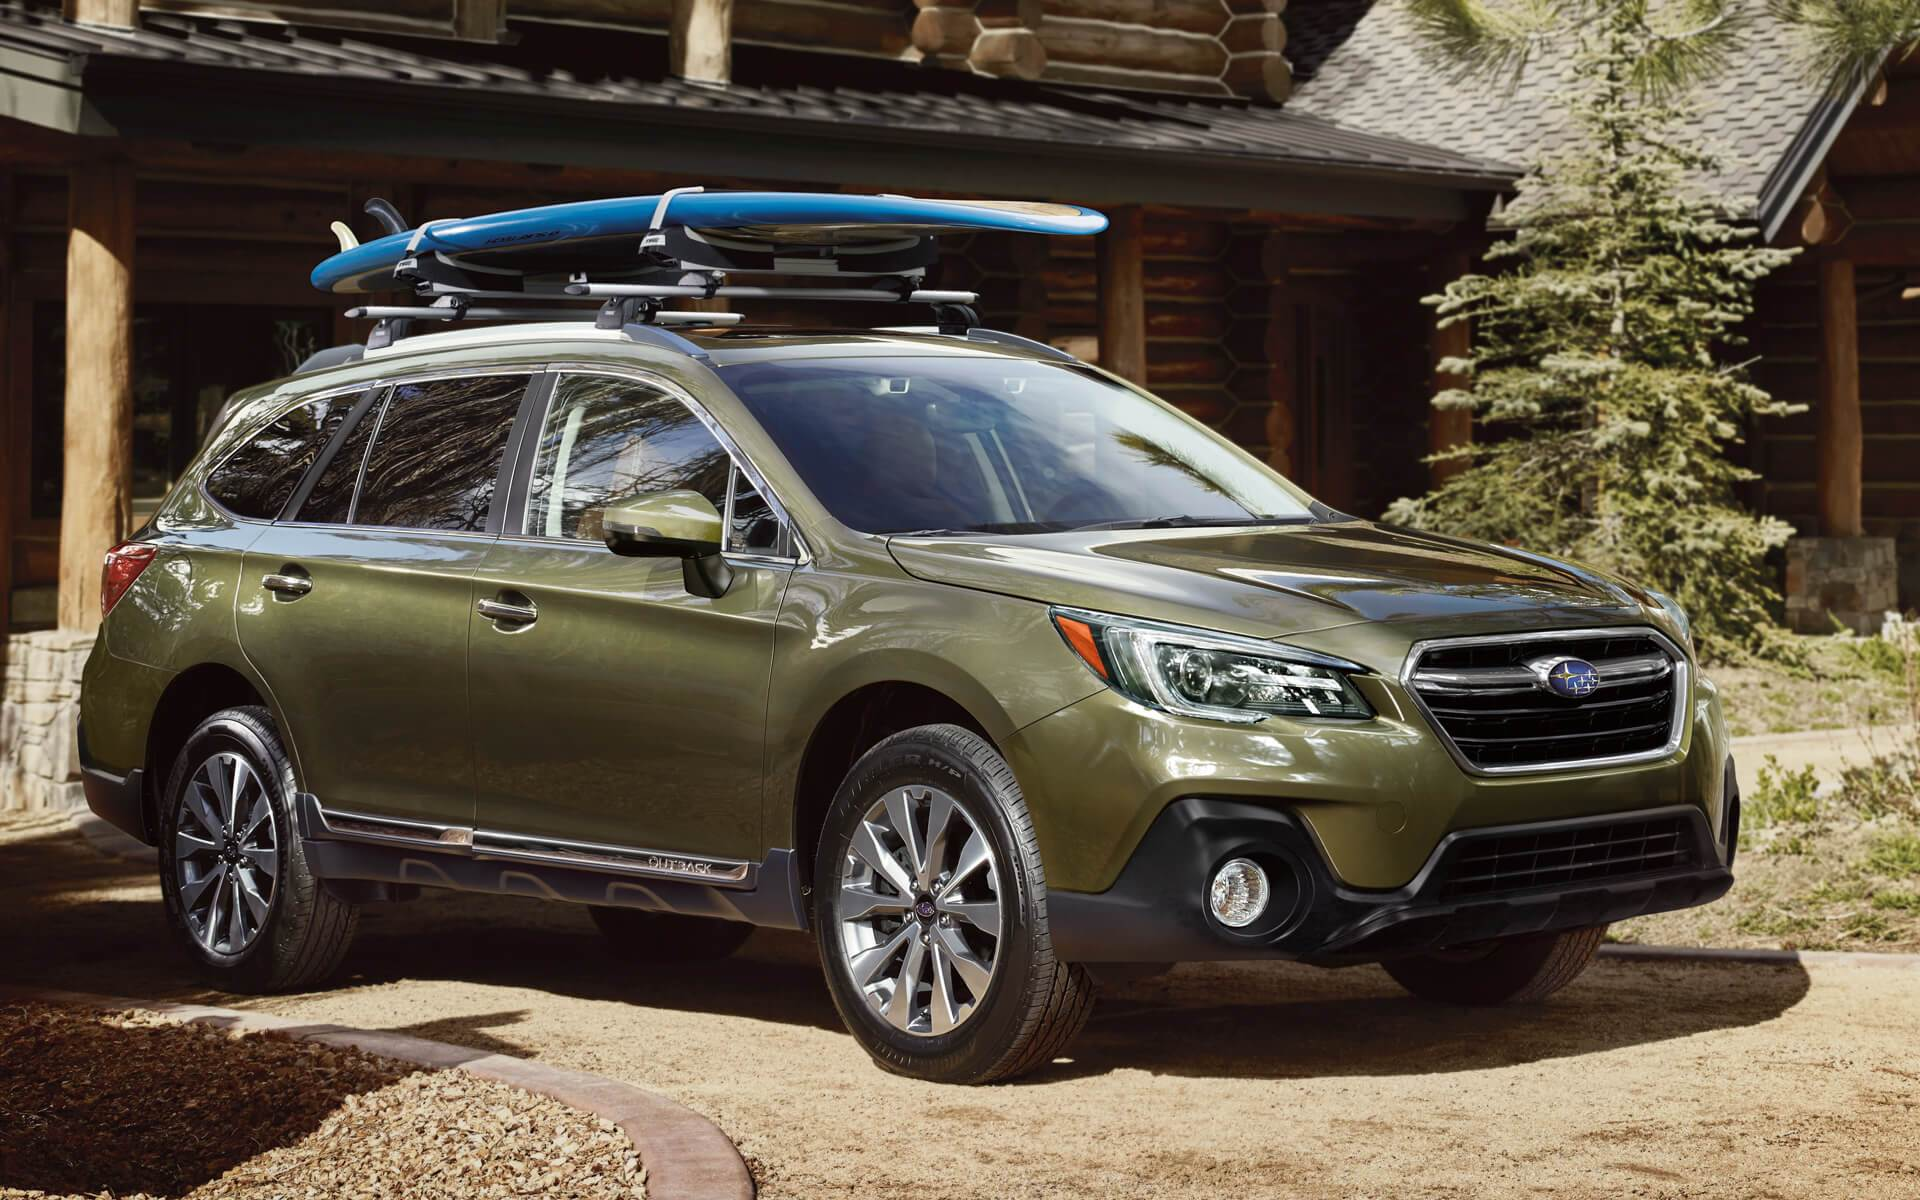 Used Subaru Outback for Sale in Boulder CO - 2018 Subaru Outback's OVERVIEW